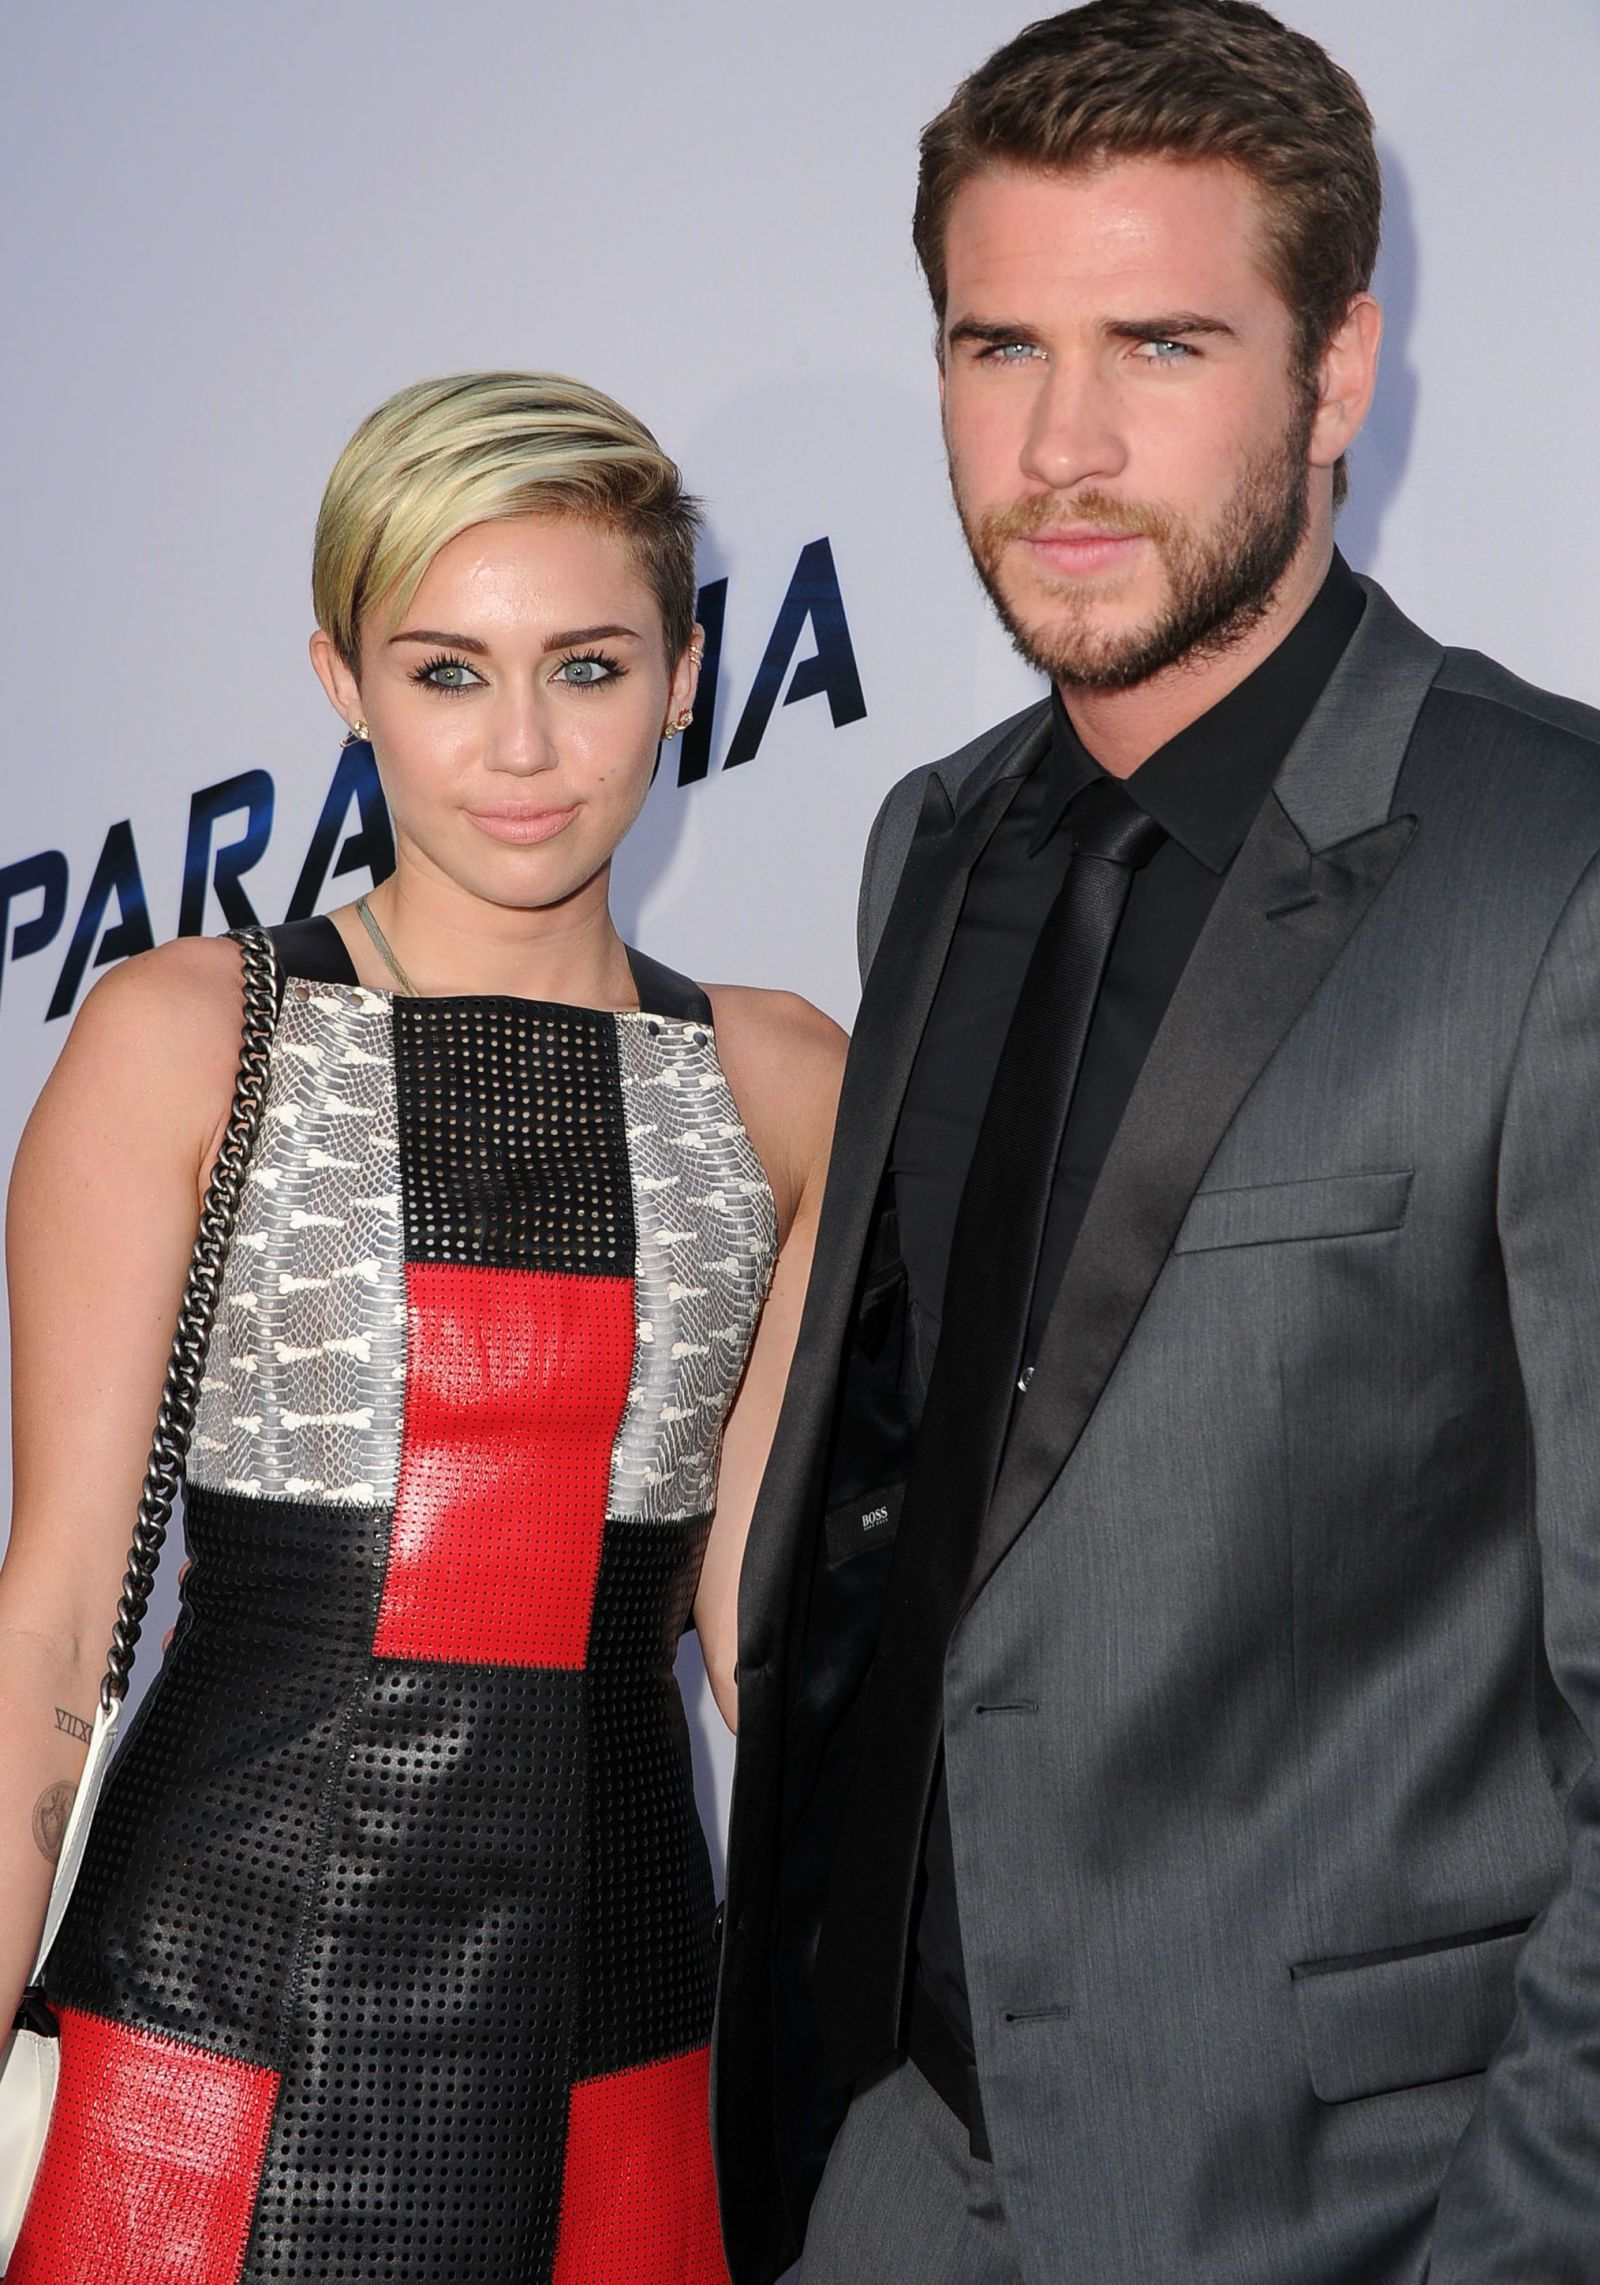 val och Kelly dating 2013 cykel dating Sydney